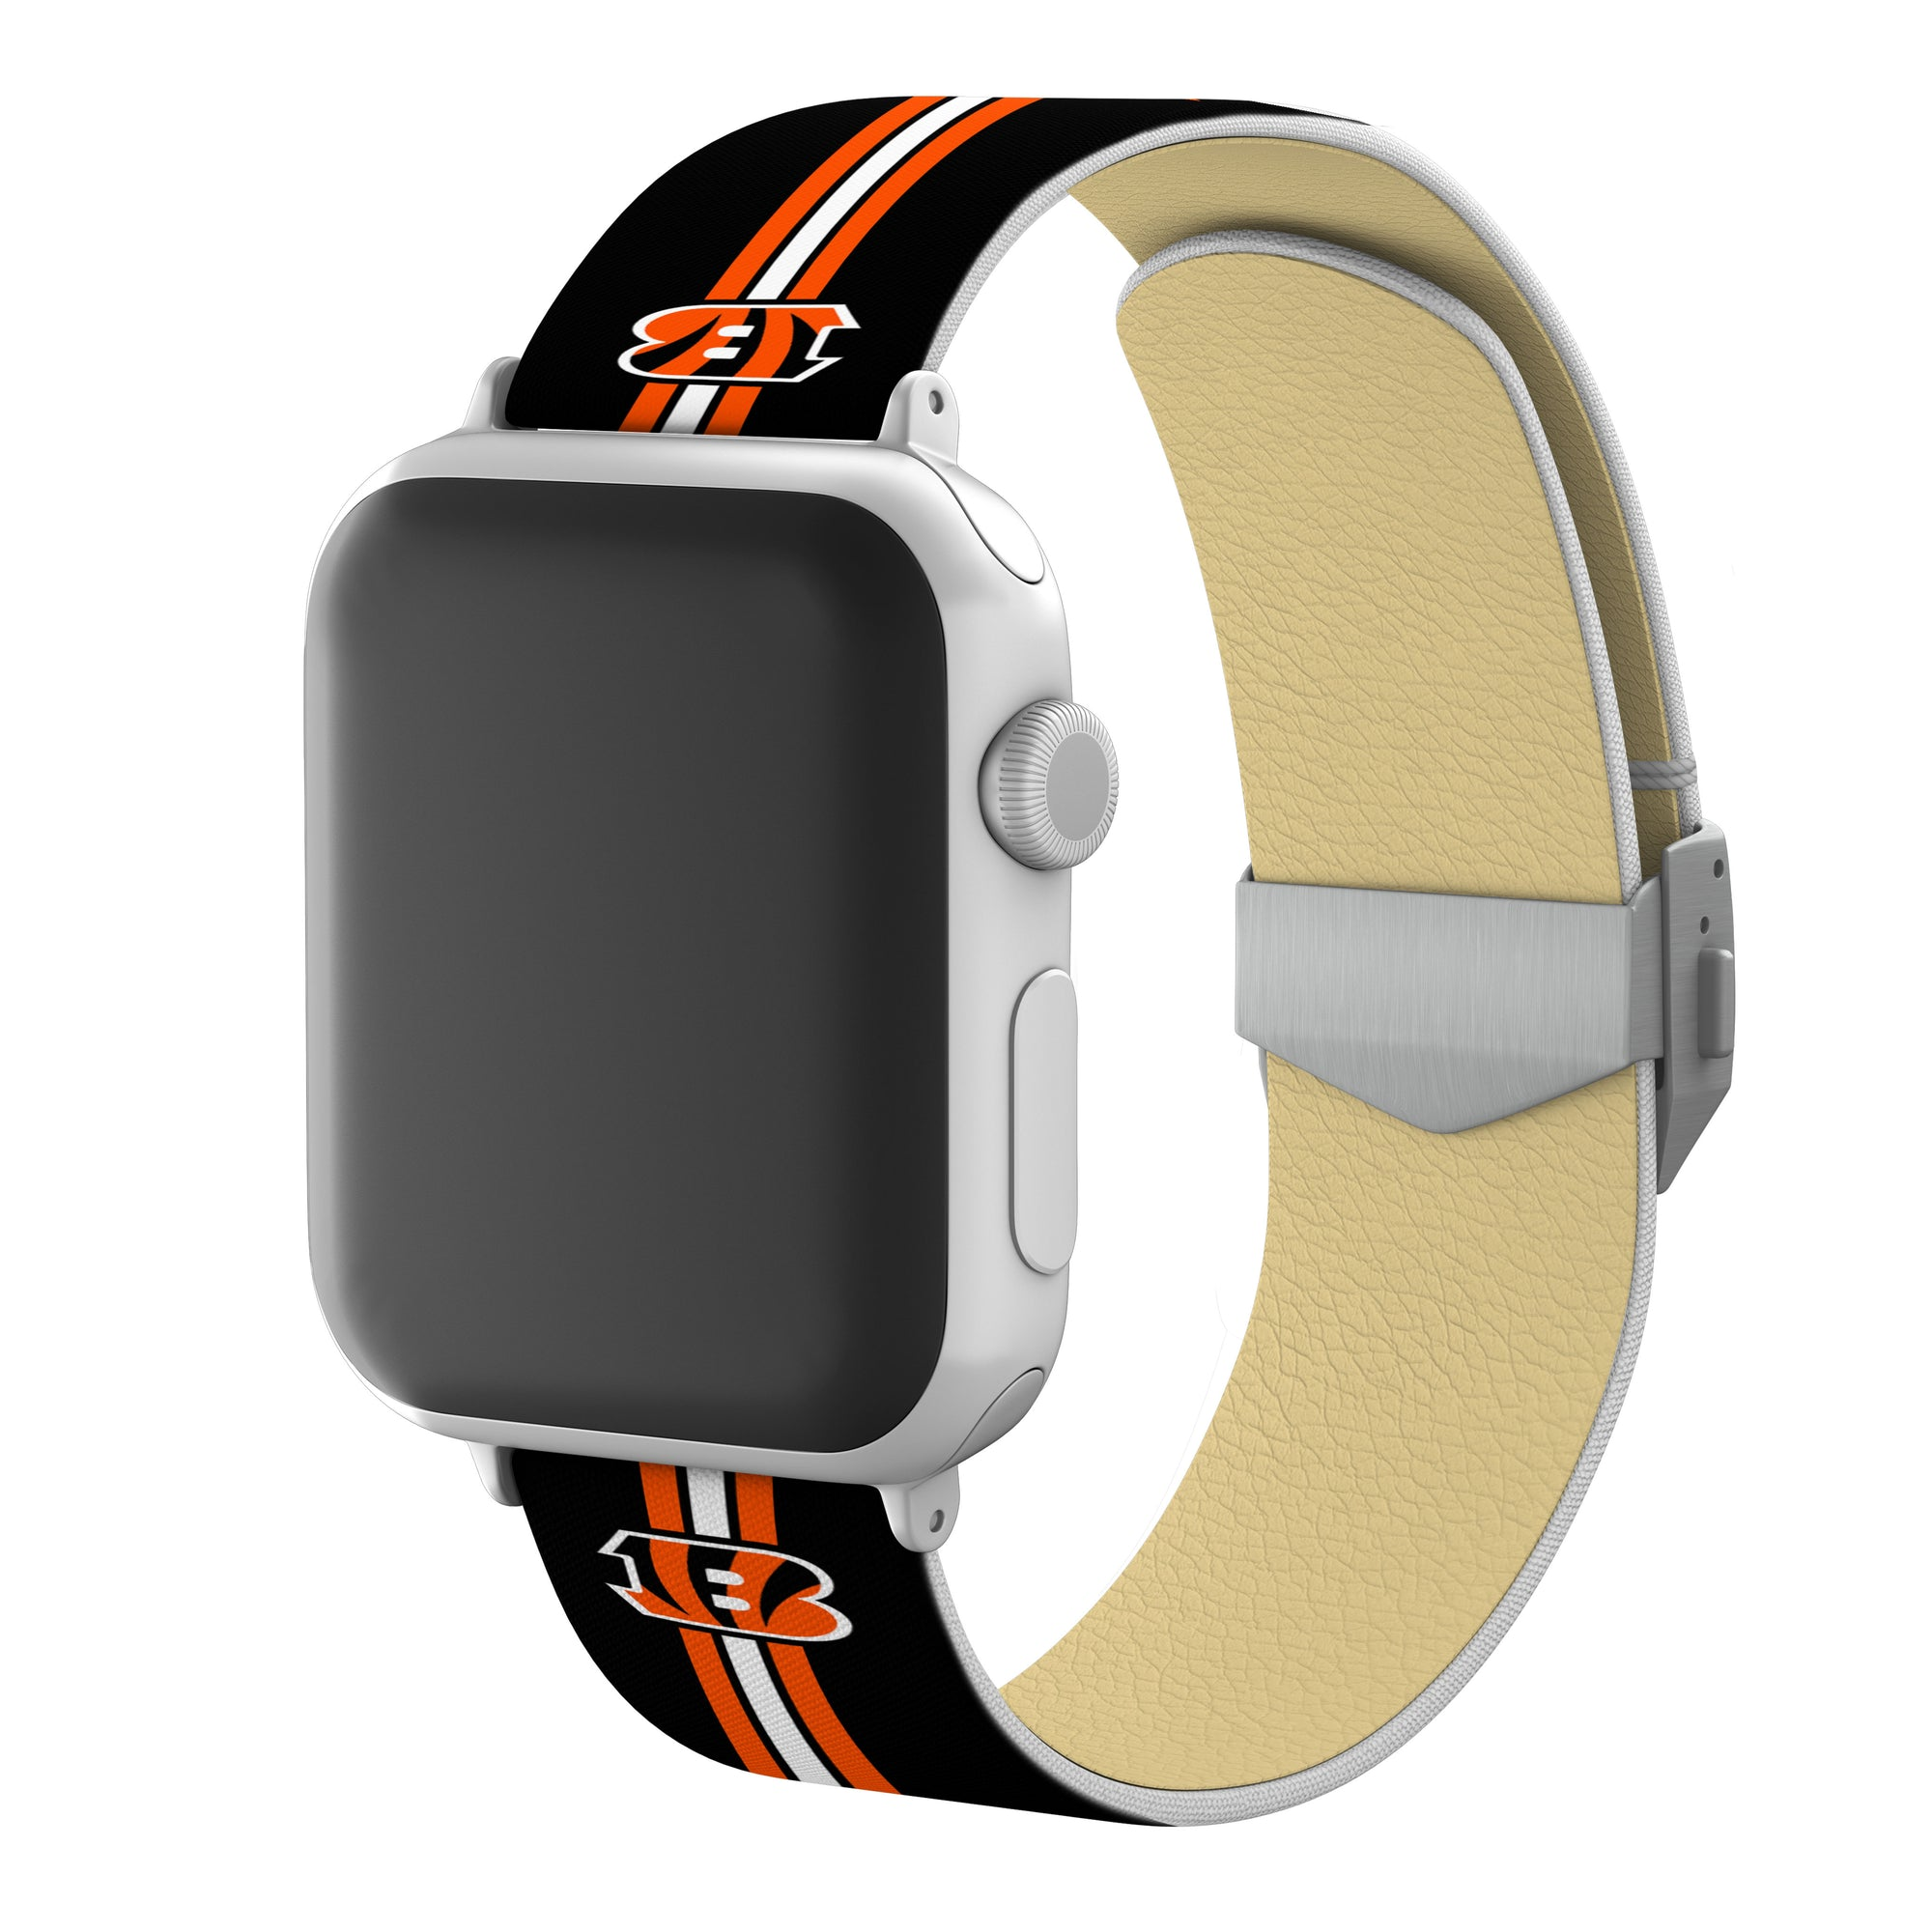 Cincinnati Bengals Full Print Watch Band With Engraved Buckle - AffinityBands